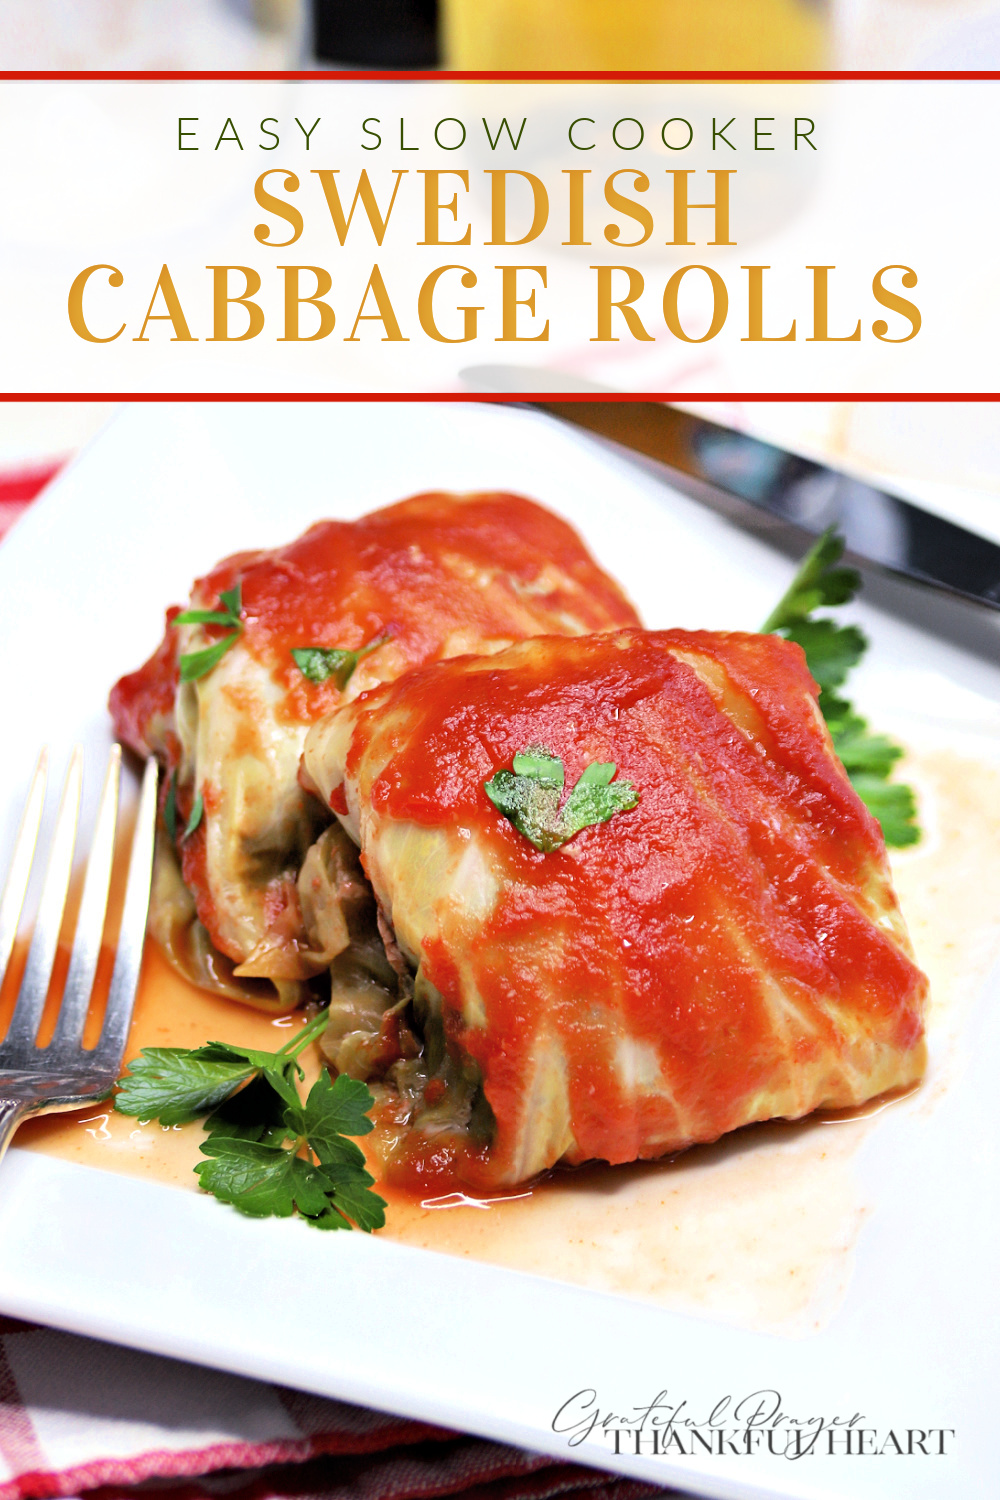 Easy slow cooker recipe for Swedish cabbage rolls filled with ground beef and rice in a tasty sauce is a comforting and satisfying Sunday dinner and on those busy days when a crockpot meal is helpful .